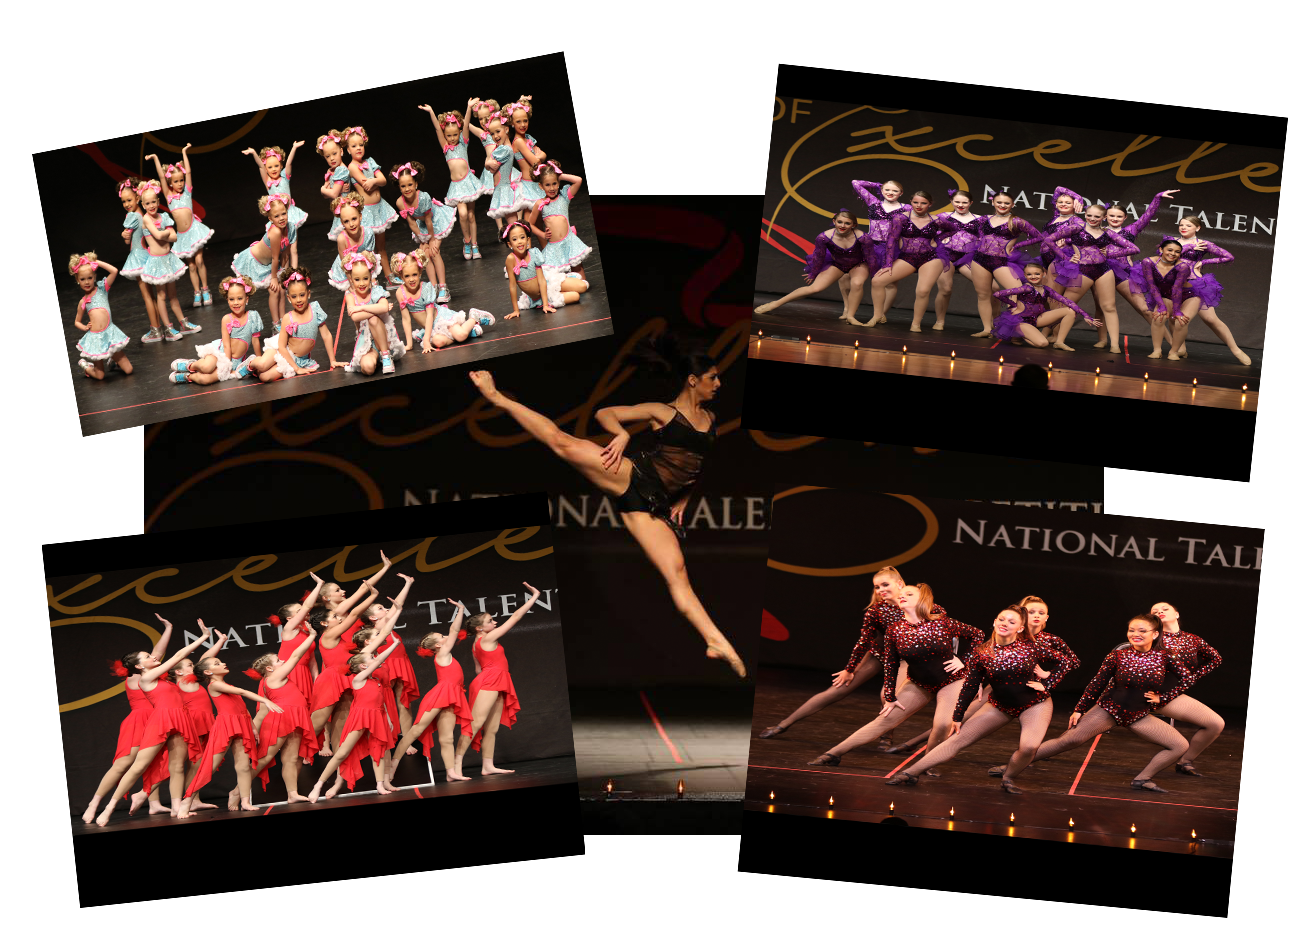 Mark of excellence tradition. Dance clipart creative dance